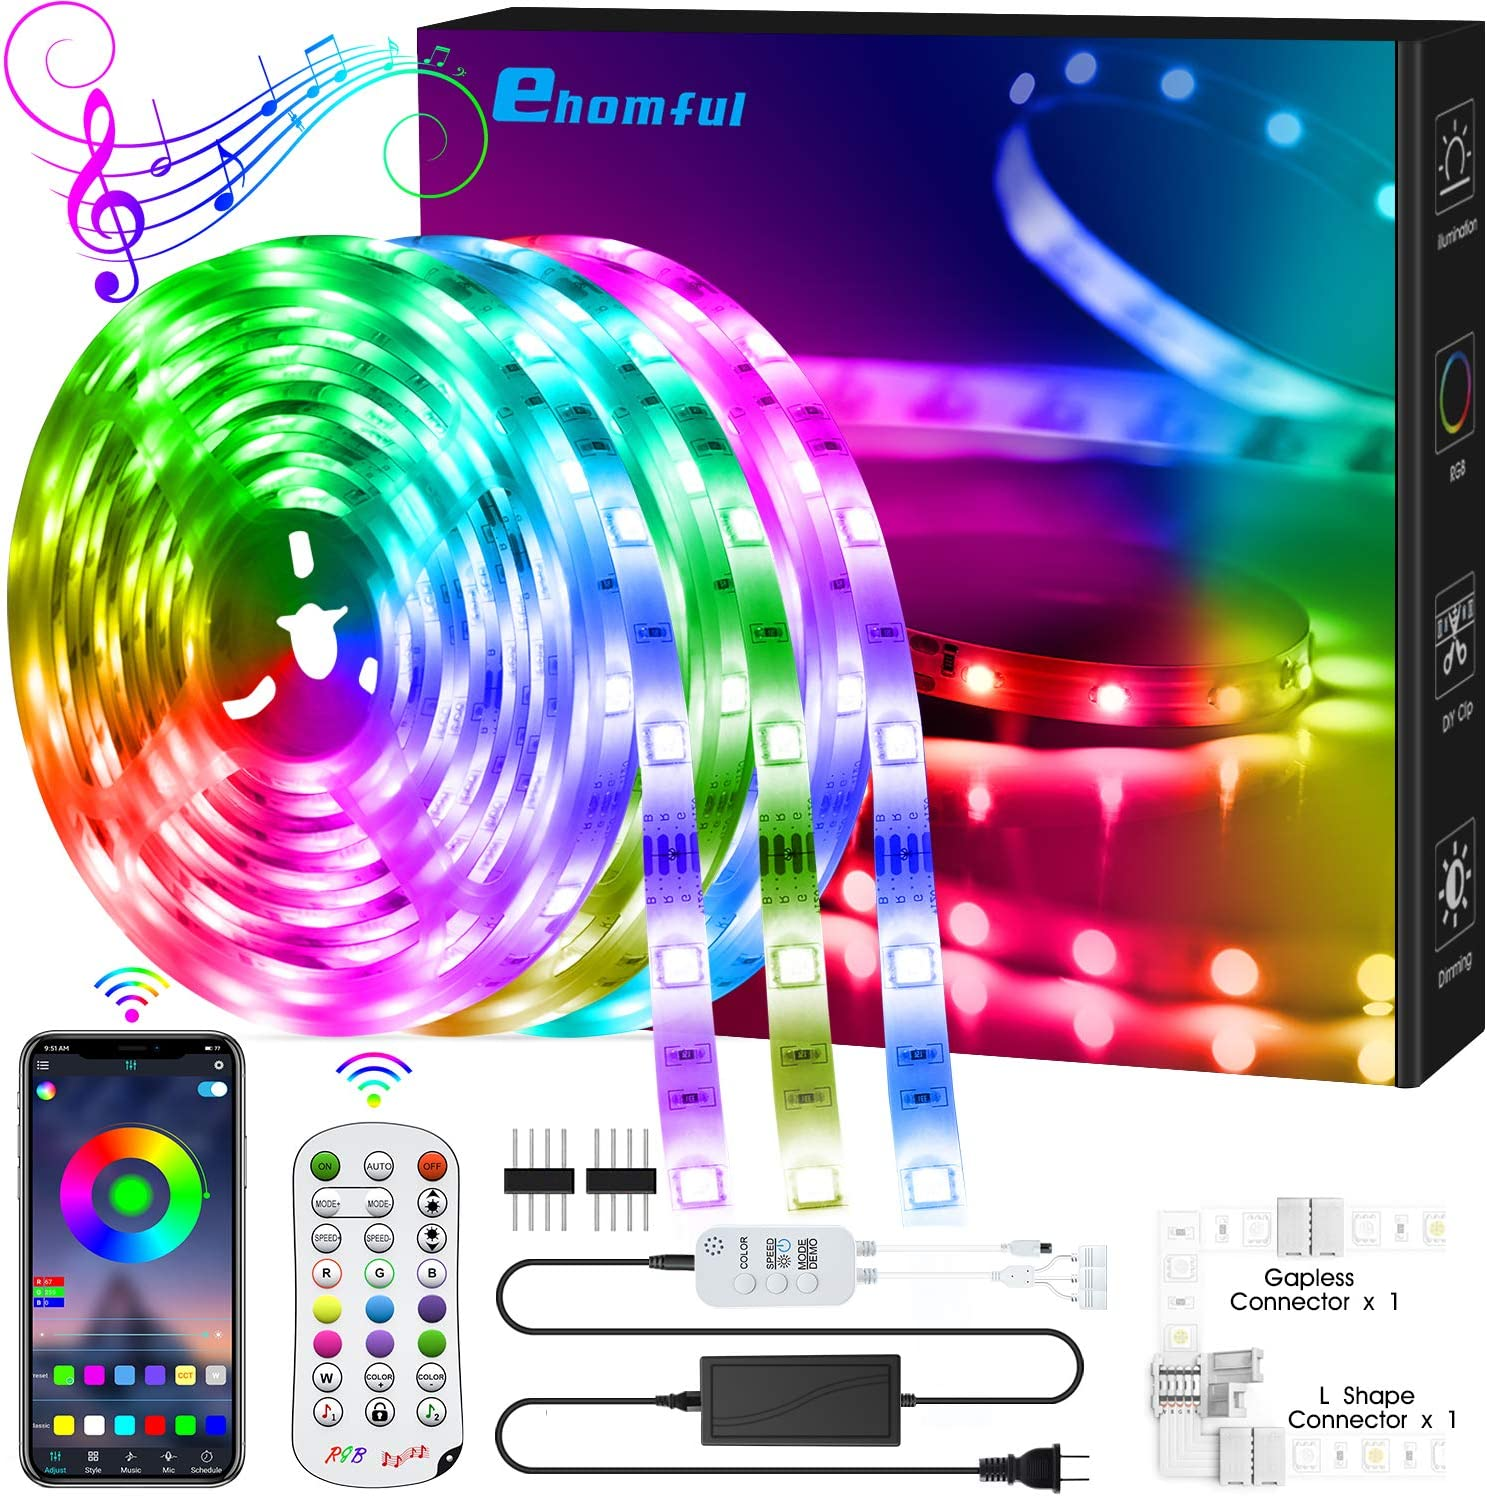 Amazon Com 40 Feet Led Strip Lights Color Changing Light Strip Music Sync App Remote Control 5050 Led Lights With Built In Mic Smart Led Lights For Bedroom Room Tv Party Diy Decoration Home